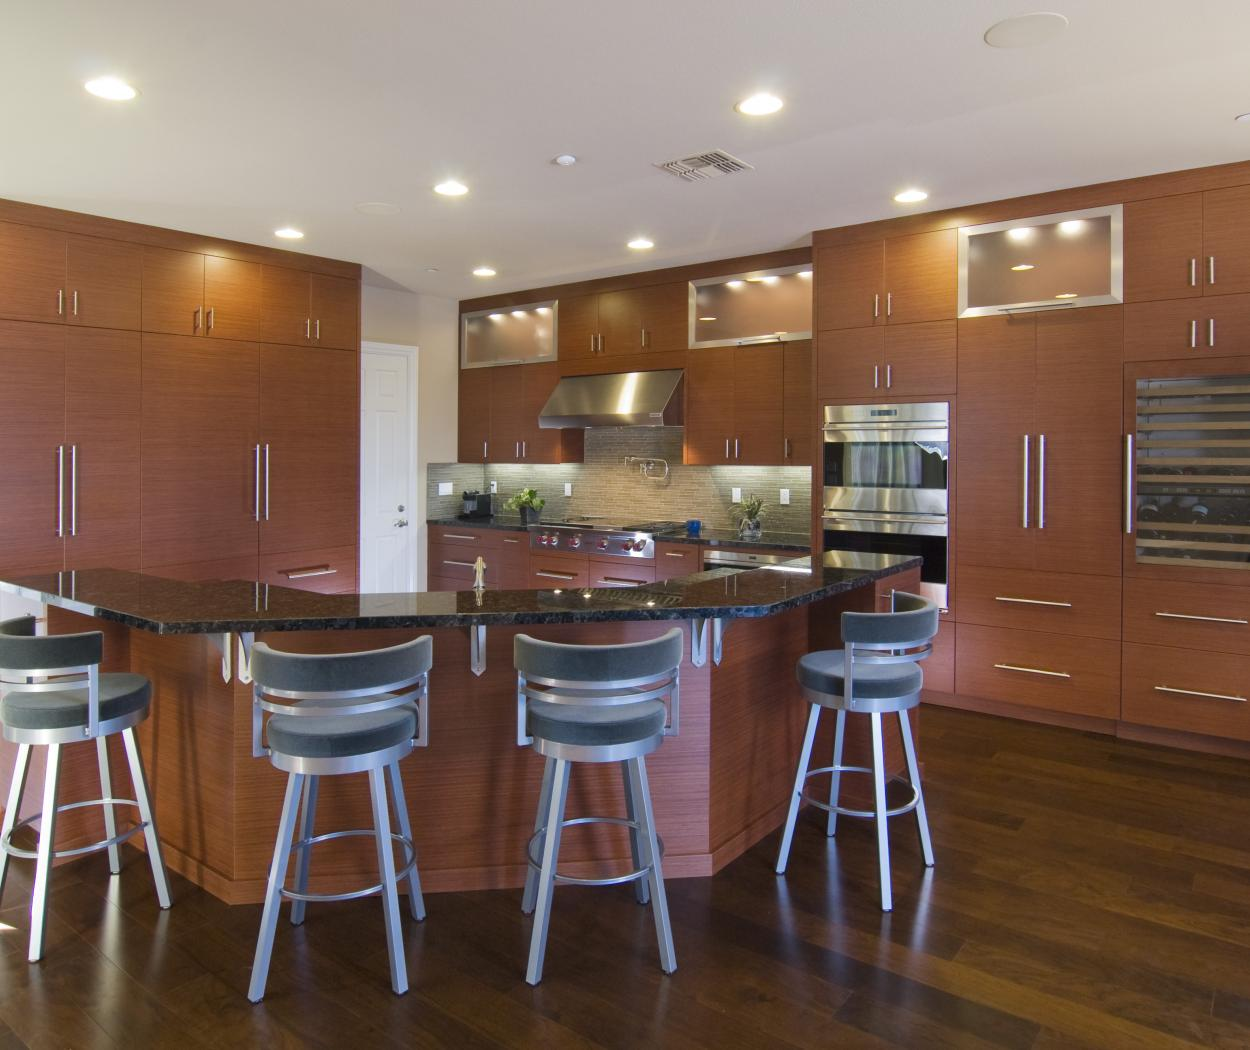 Contemporary Kitchen with a Beautiful Island, Dark Counter Tops, Aluminum Door Frames, Puck Lighting and Stainless Steel Appliances